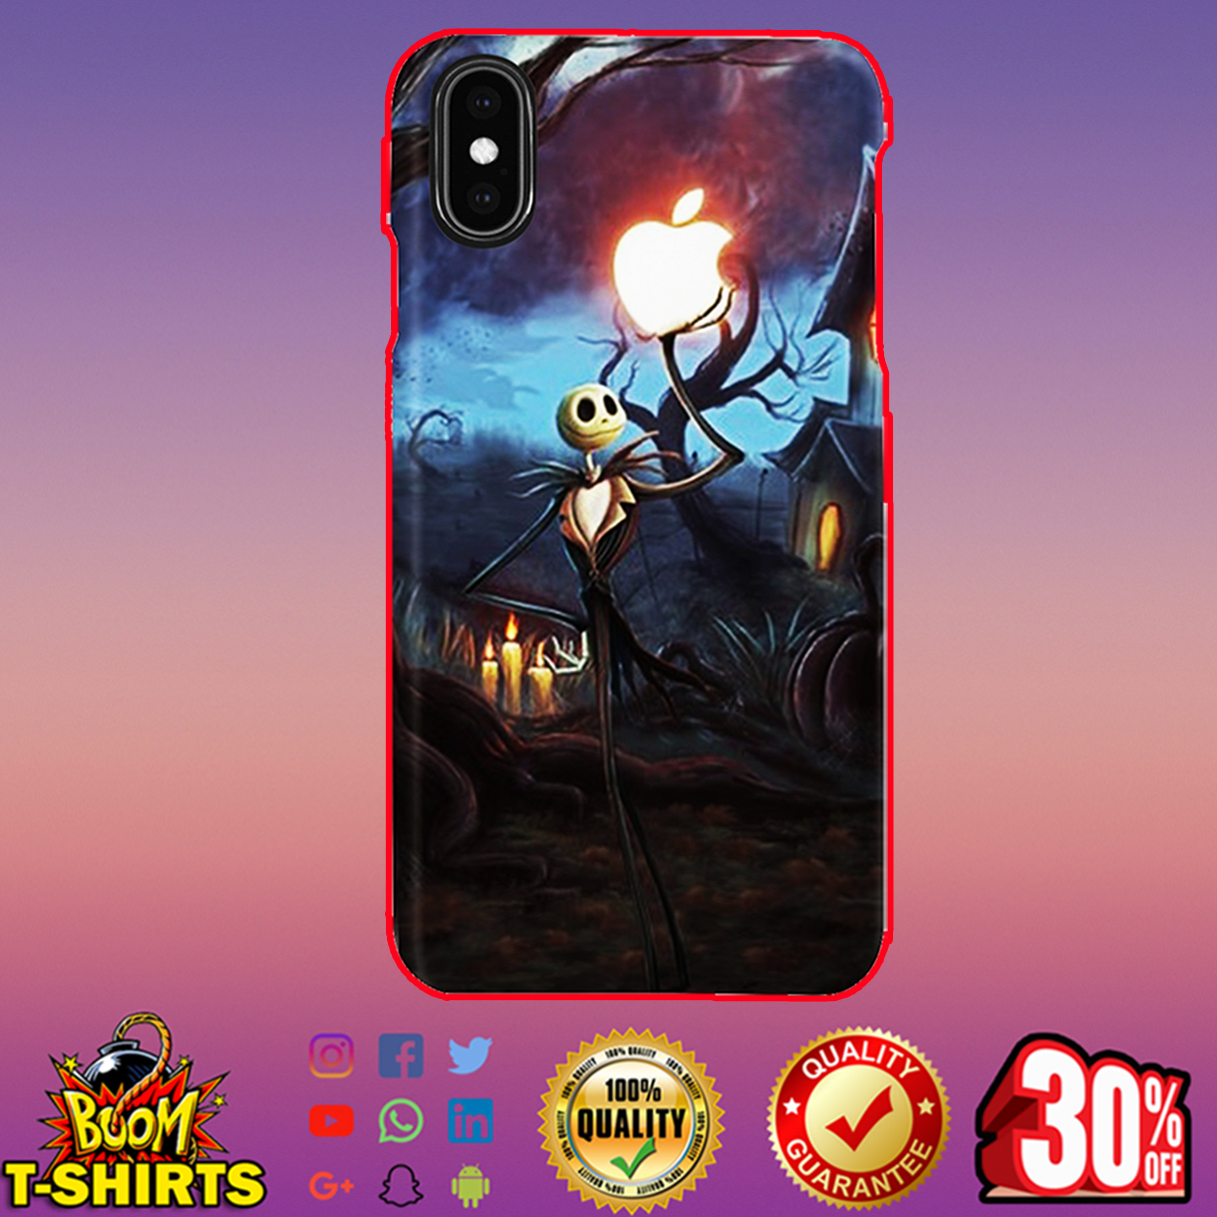 Jack Skellington Apple phone case - iphone XS max case